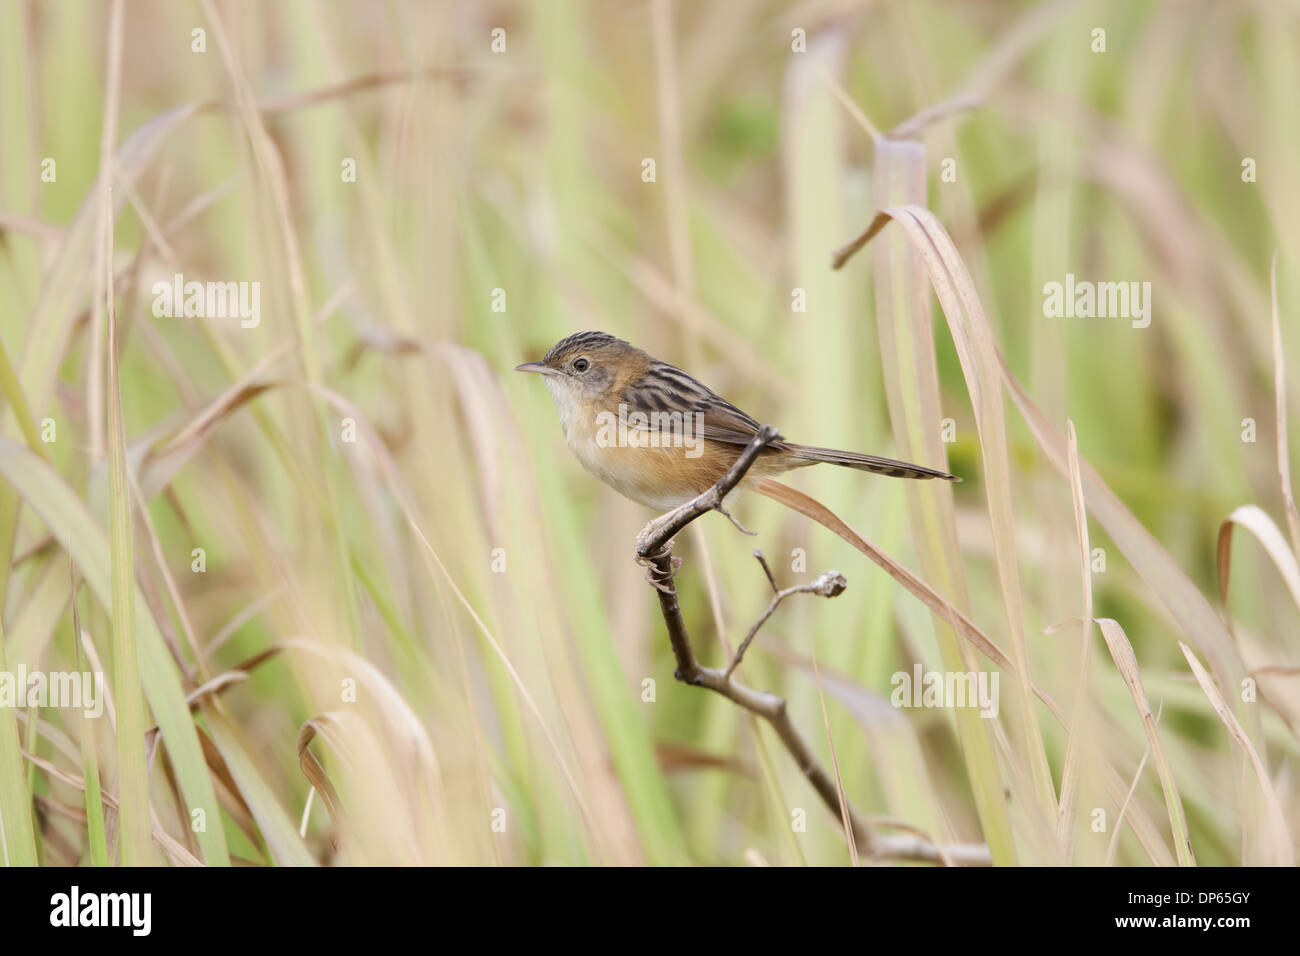 Golden-headed Cisticola (Cisticola exilis) adult, non-breeding plumage, perched on twig, Hong Kong, China, February - Stock Image